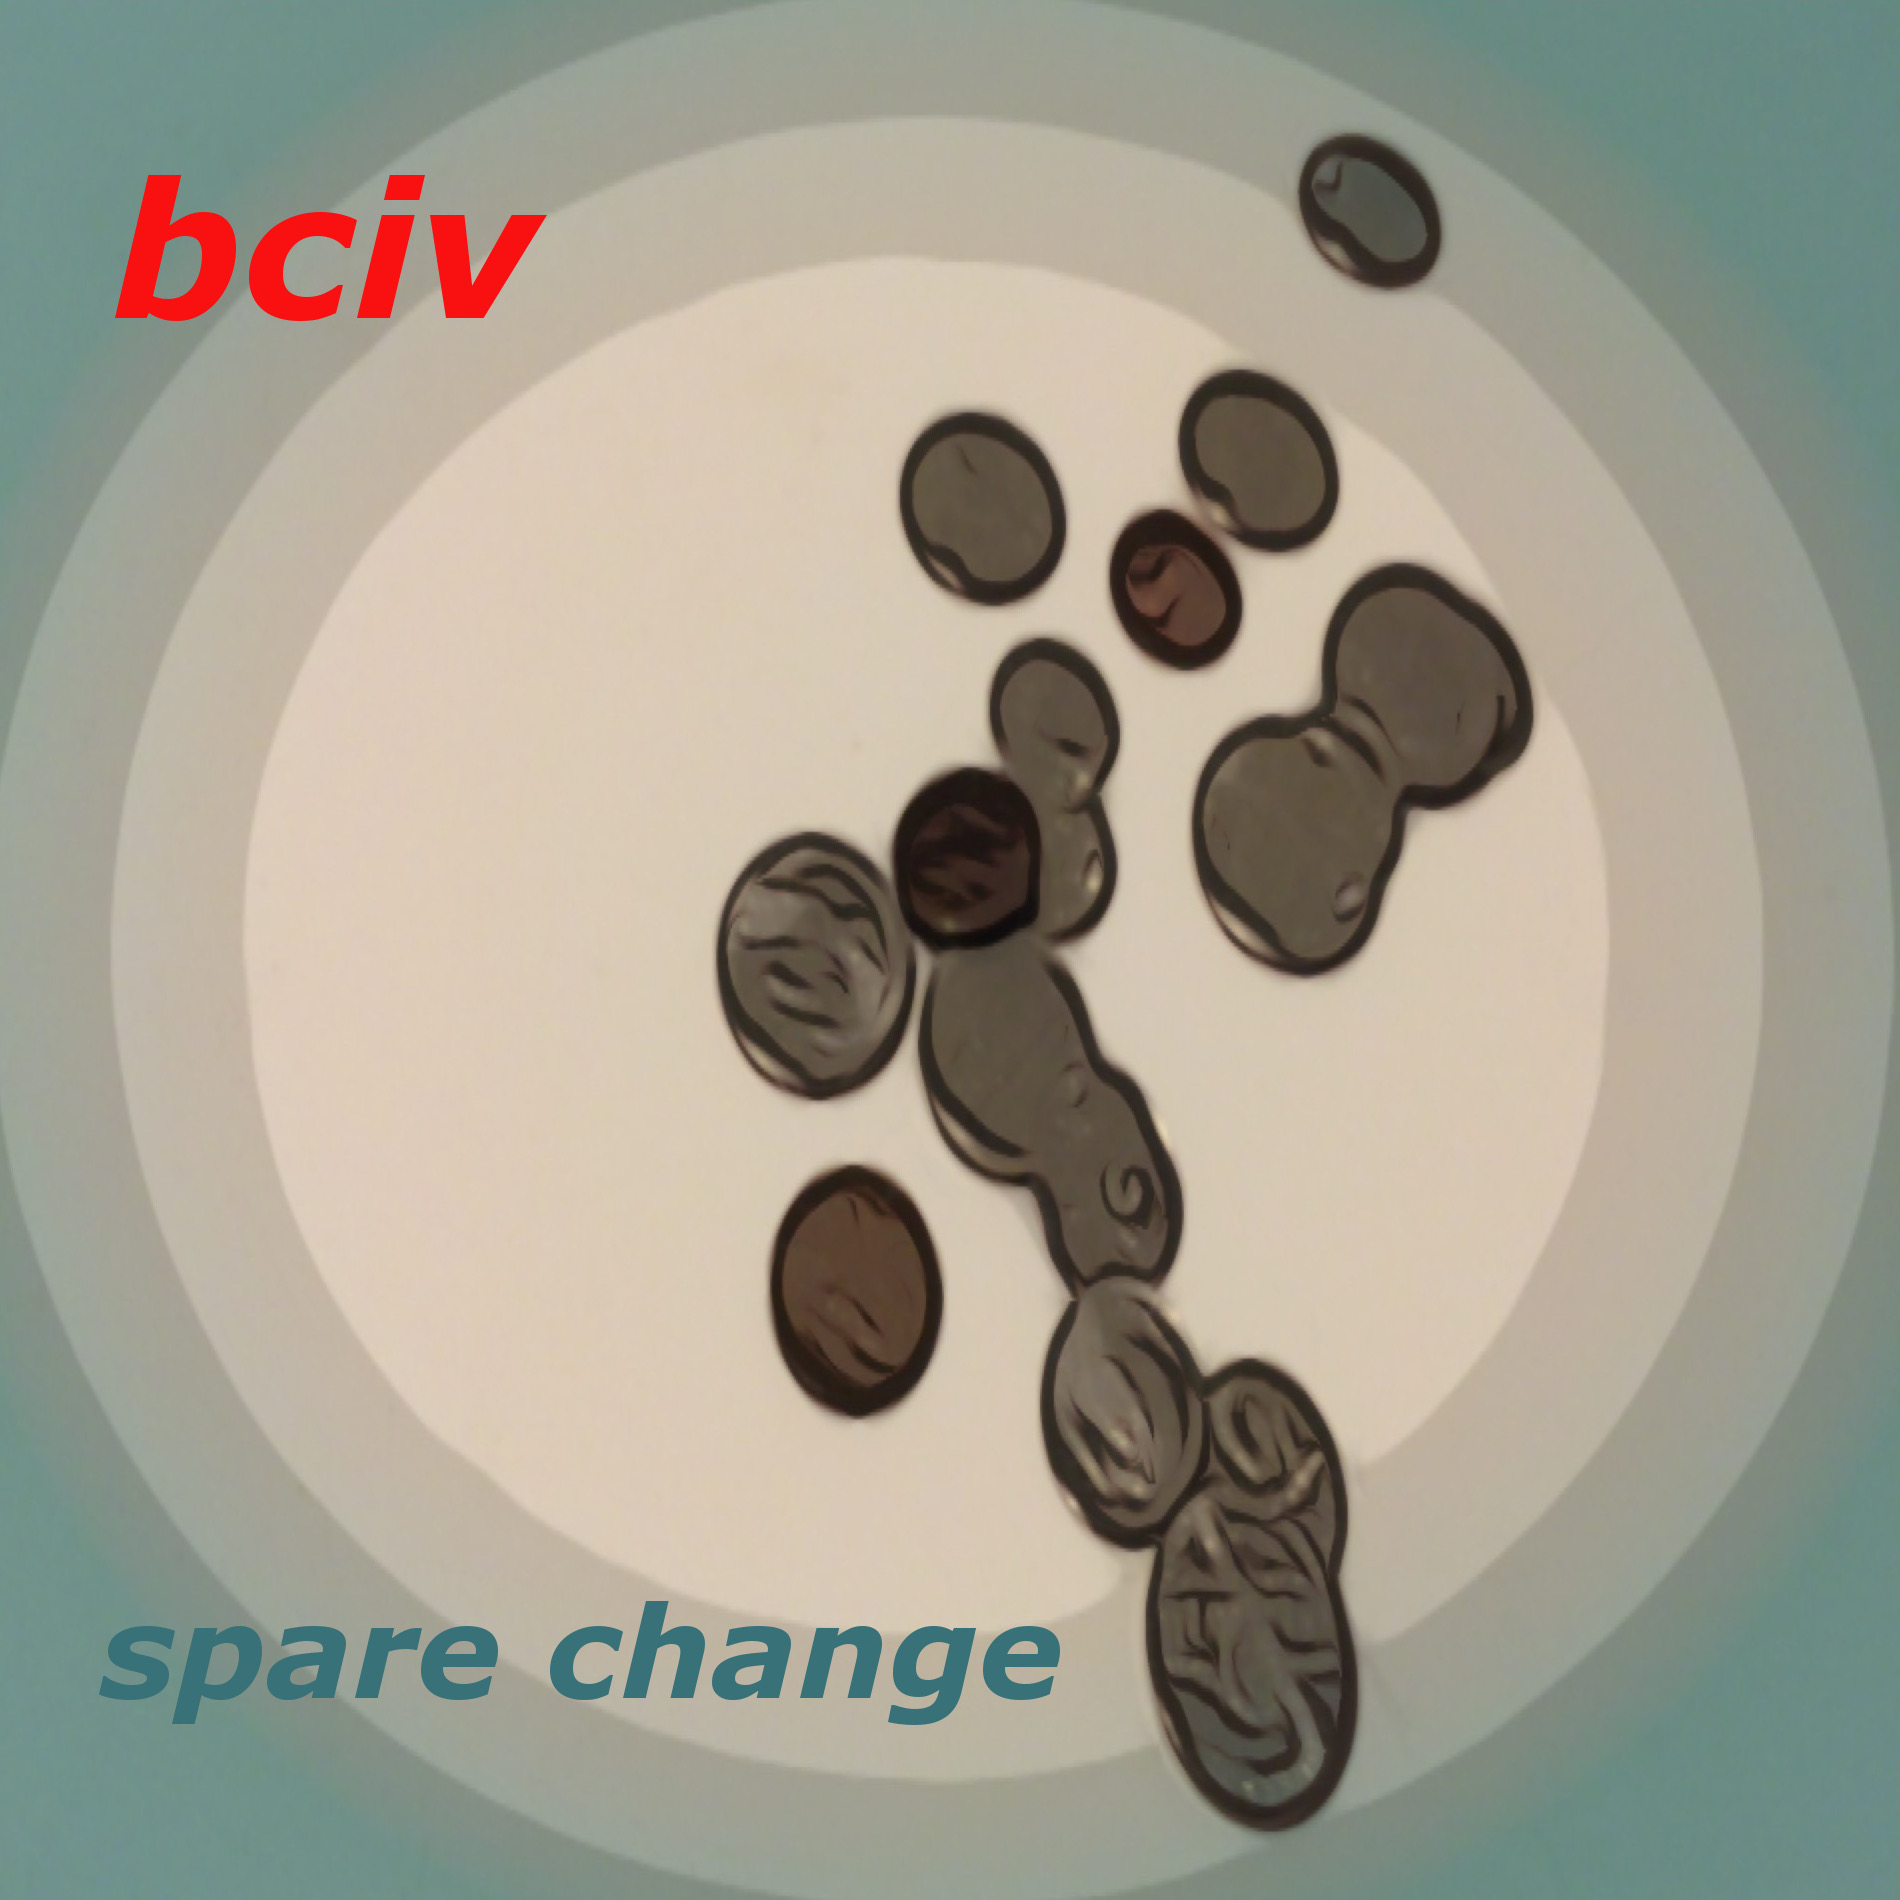 Album cover for Spare Change album. Cartoonized silver coins lay on a turquoise background.